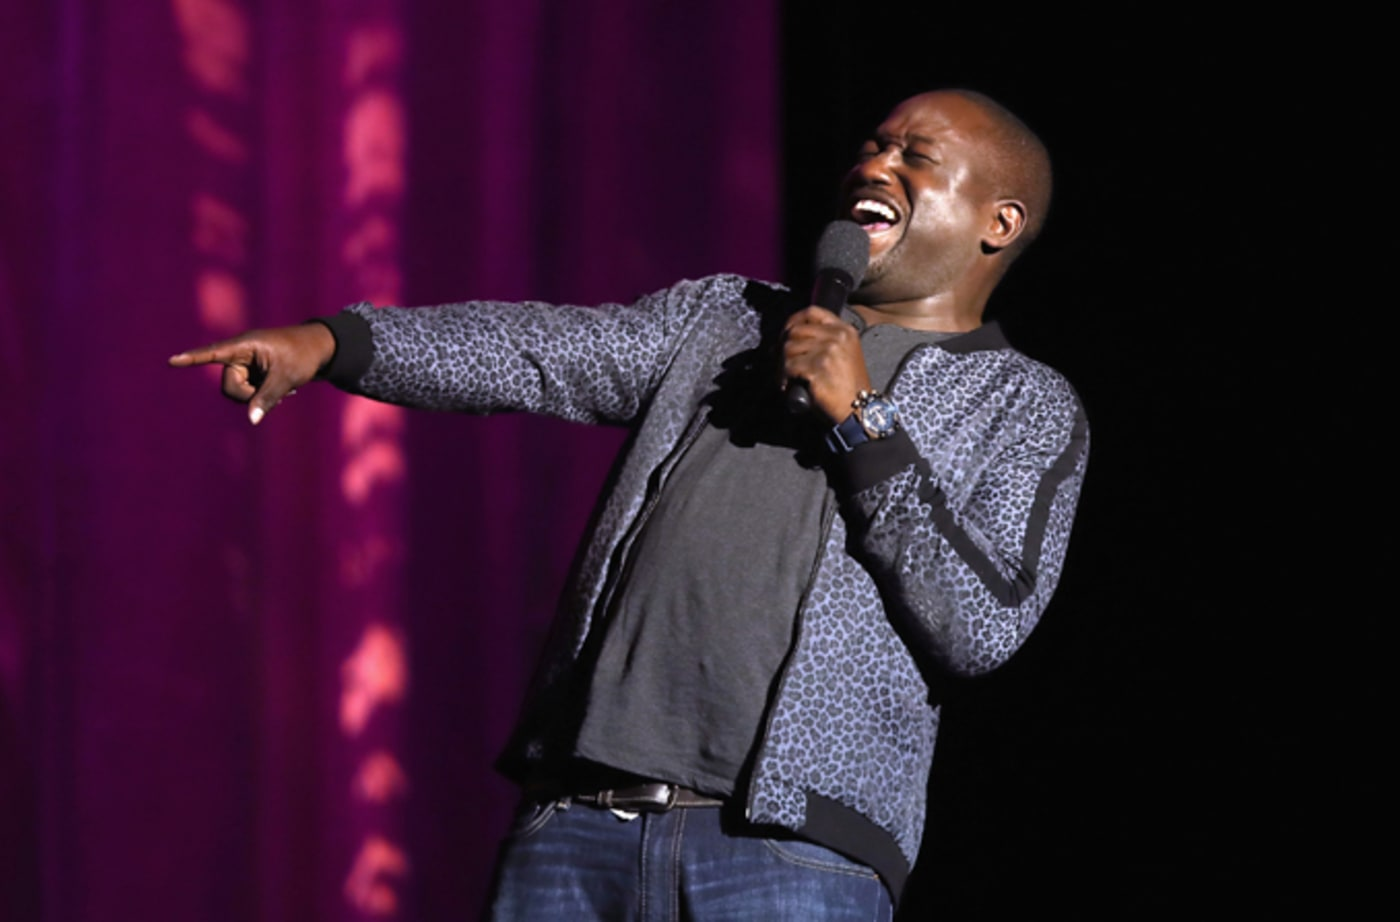 Hannibal Buress performs at the International Myeloma Foundation 11th Annual Comedy Celebration